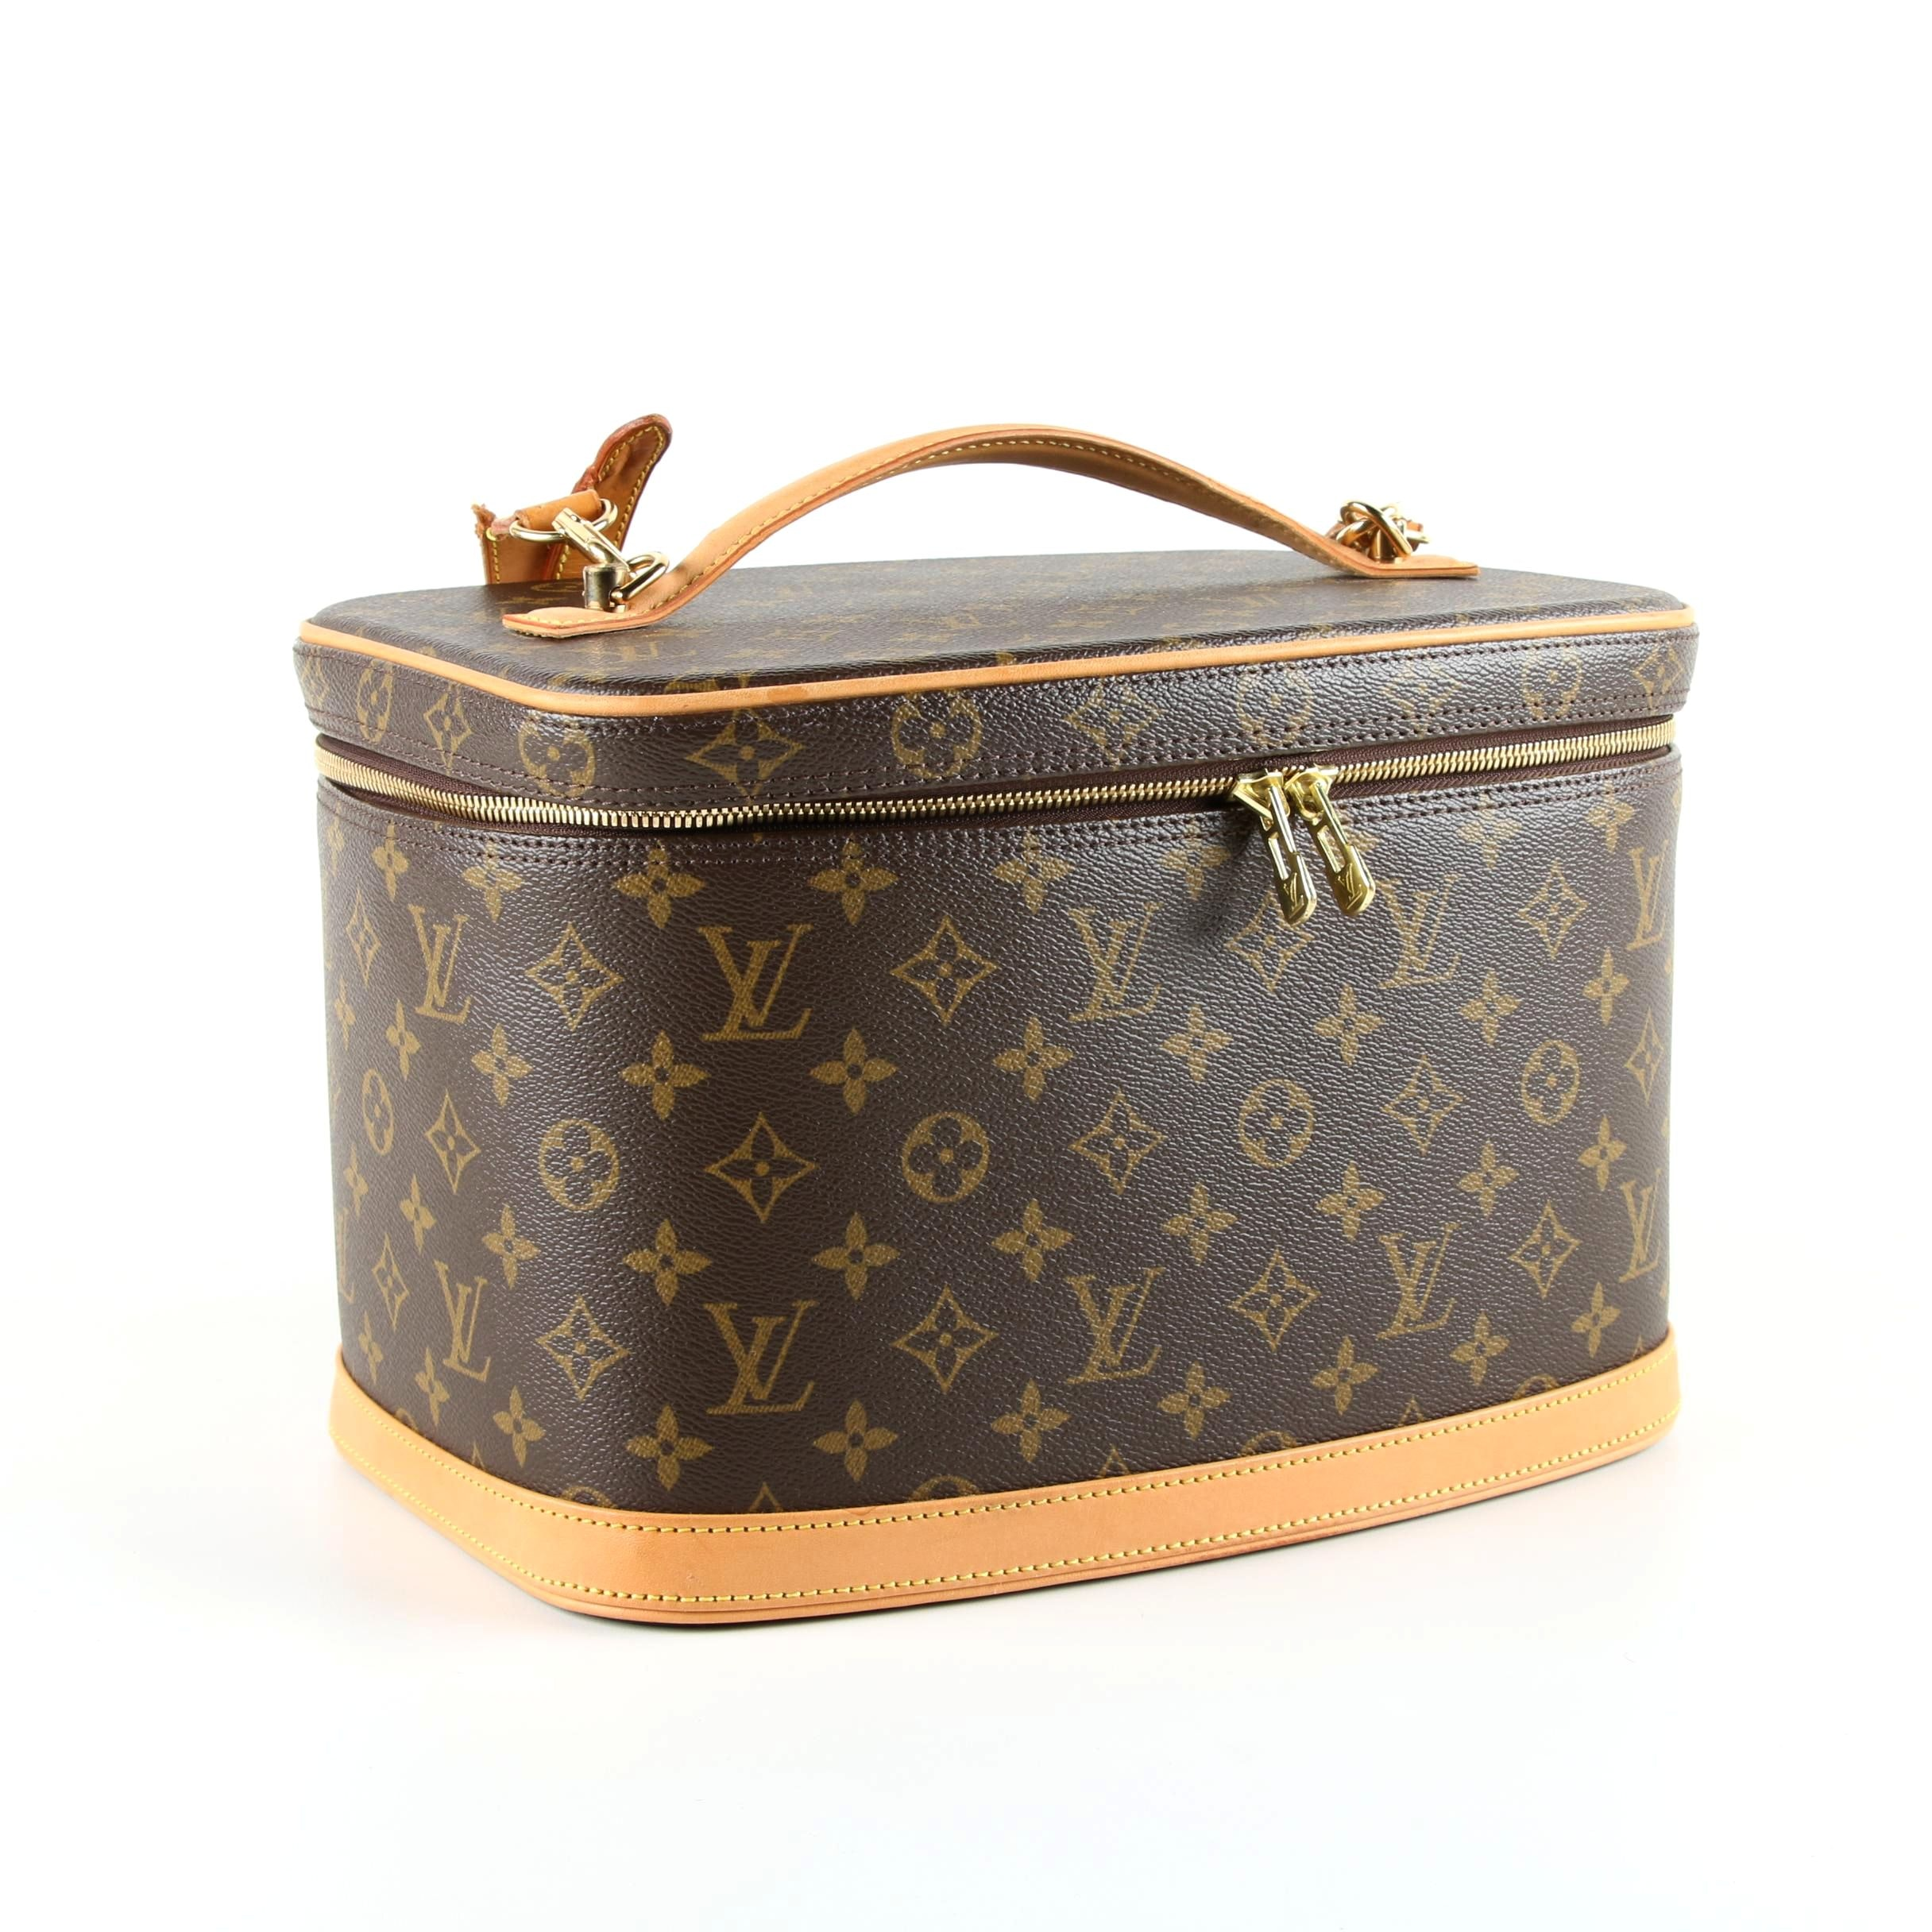 2006 Louis Vuitton Monogram Canvas Nice Cosmetic Travel Case